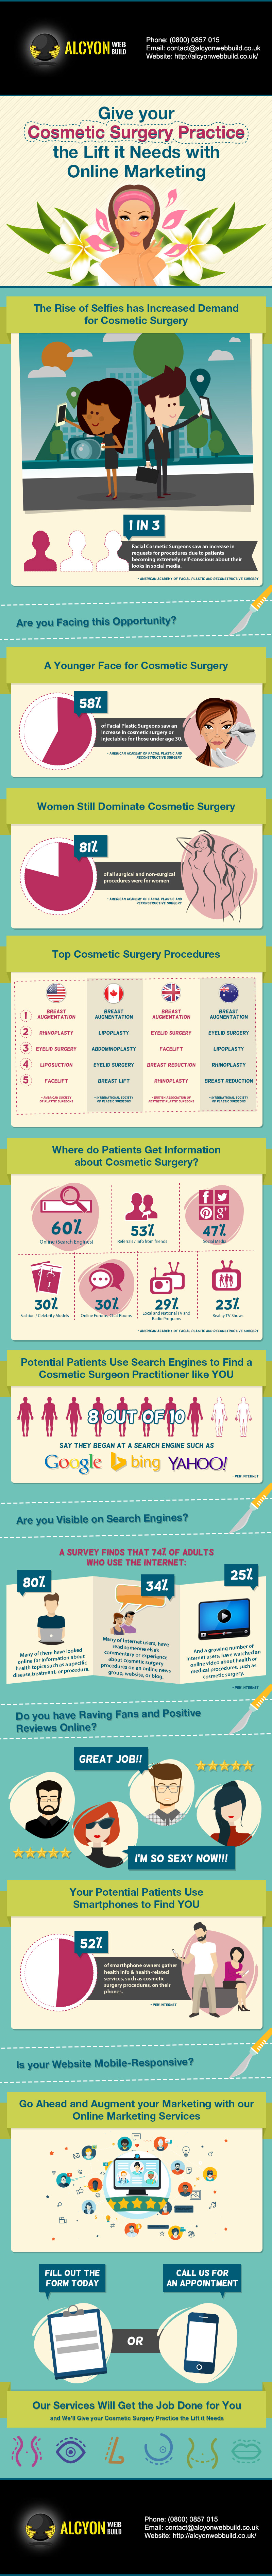 AlCyonWebBuild.co.uk-Online-Marketing-for-Cosmetic-Surgeons-Infographic-UK